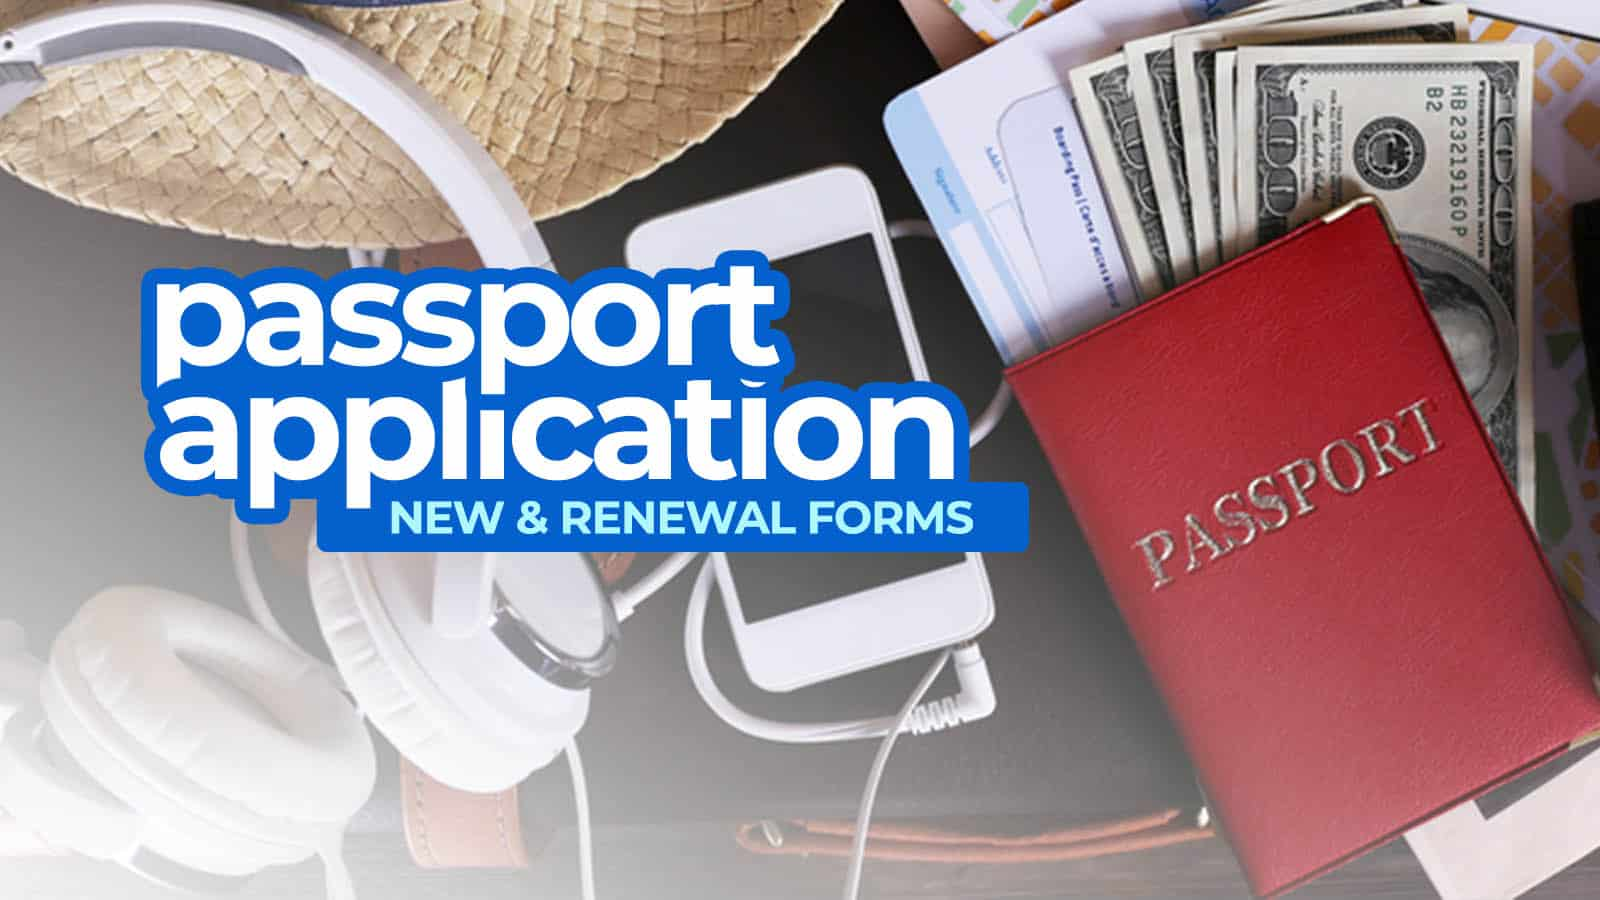 Philippine PASSPORT APPLICATION FORMS: New & Renewal | The Poor Traveler  Itinerary Blog